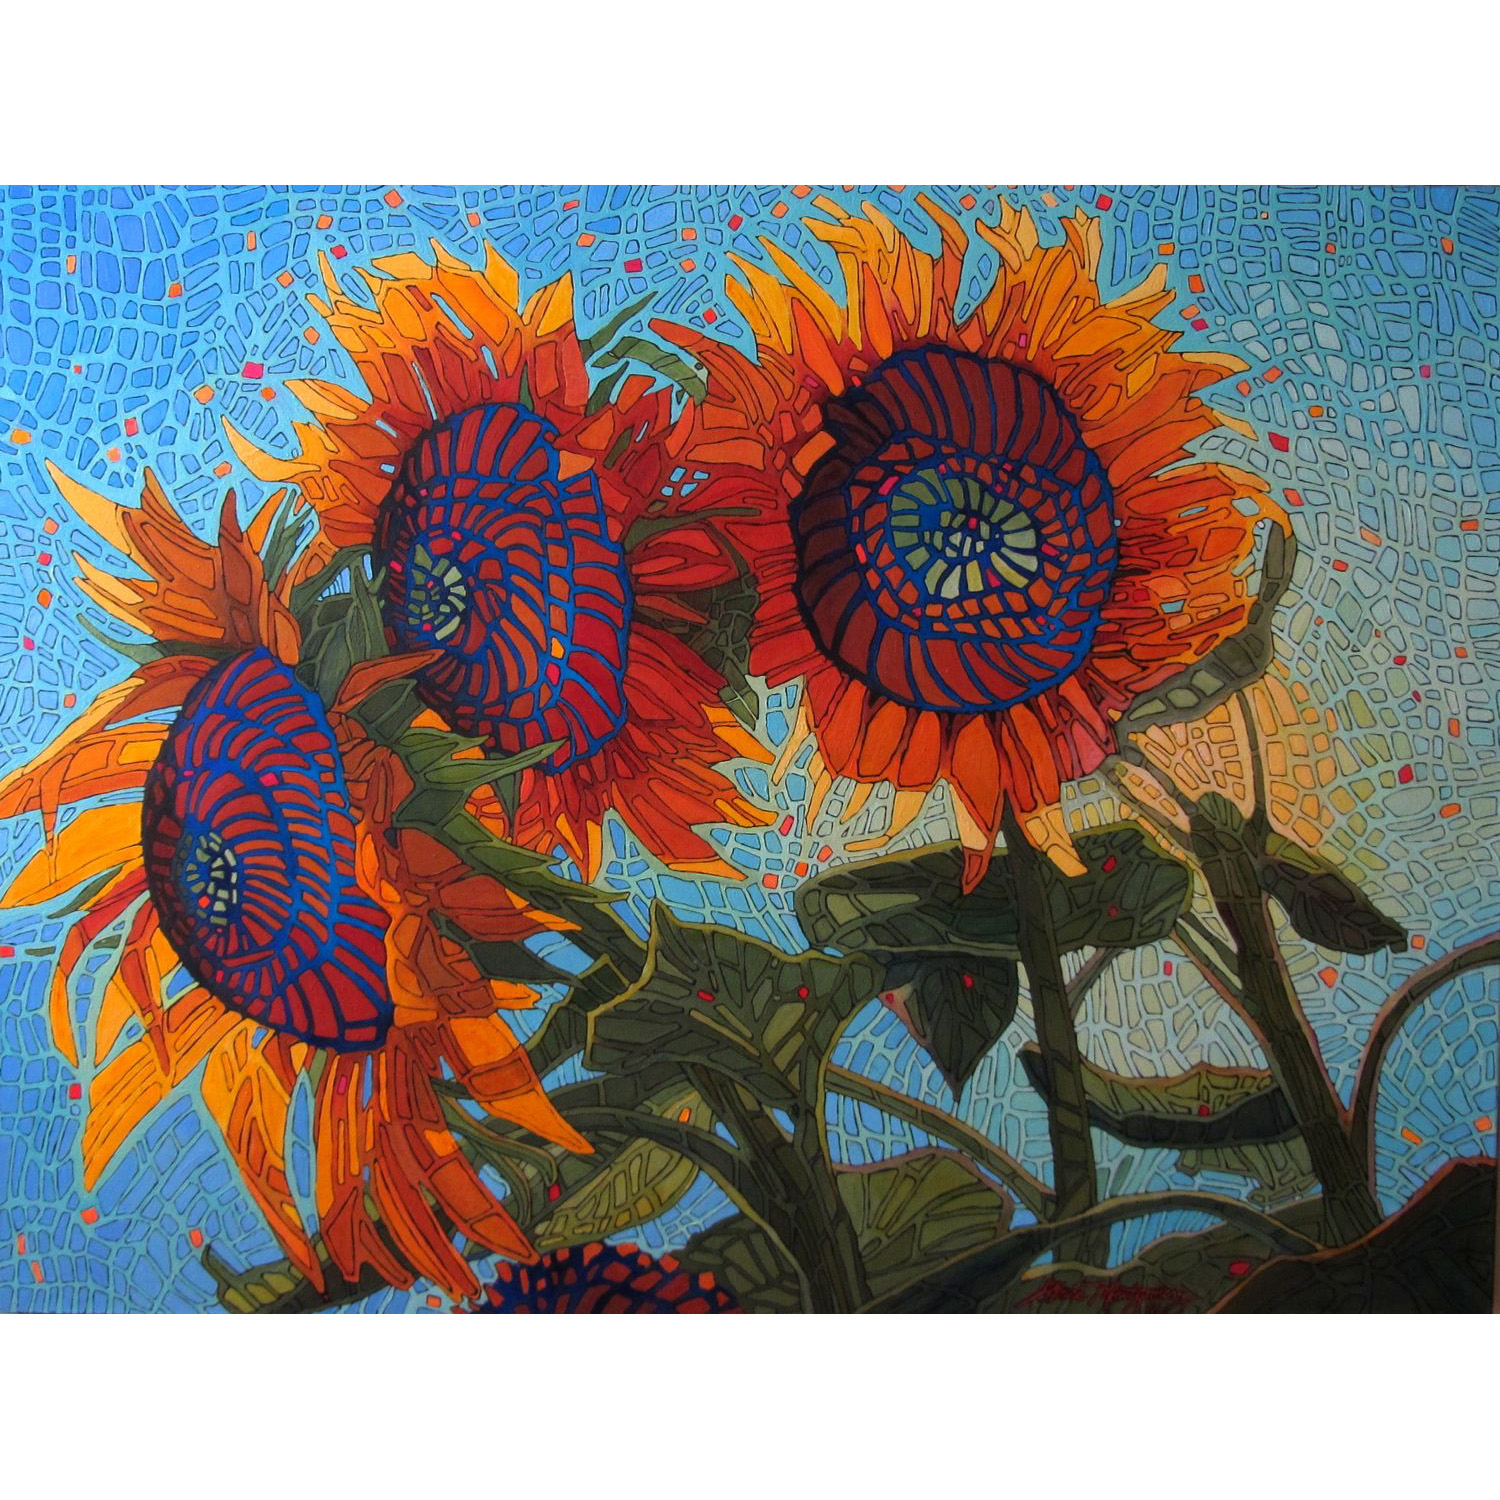 Shelley's Sunflowers